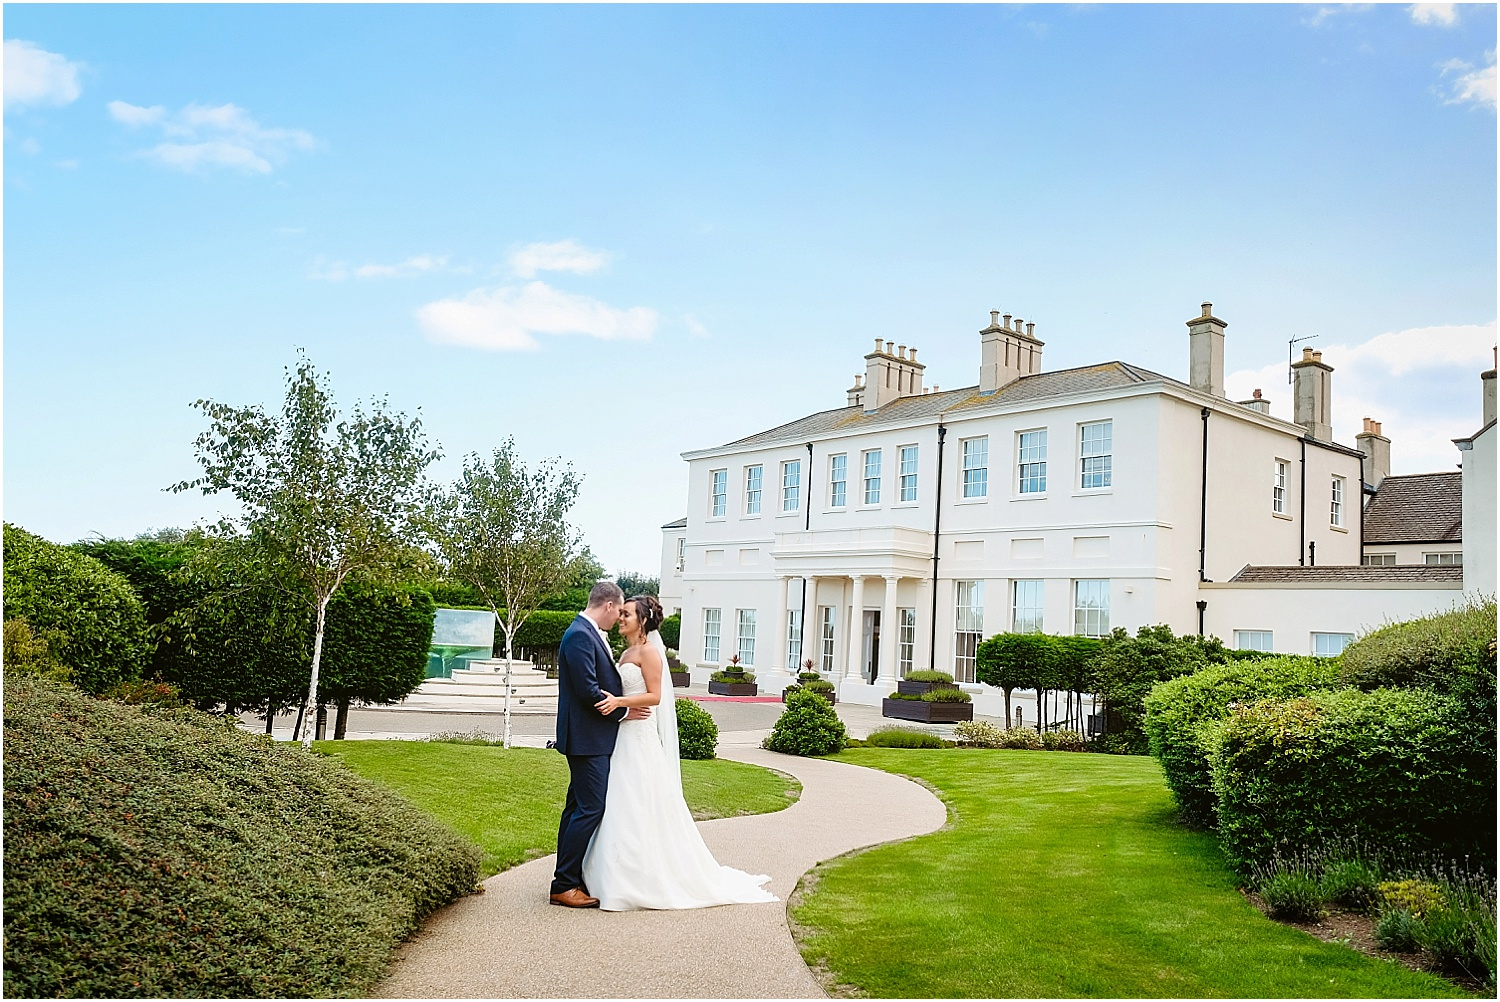 Wedding at Seaham Hall - wedding photography by www.2tonephotography.co.uk 062.jpg